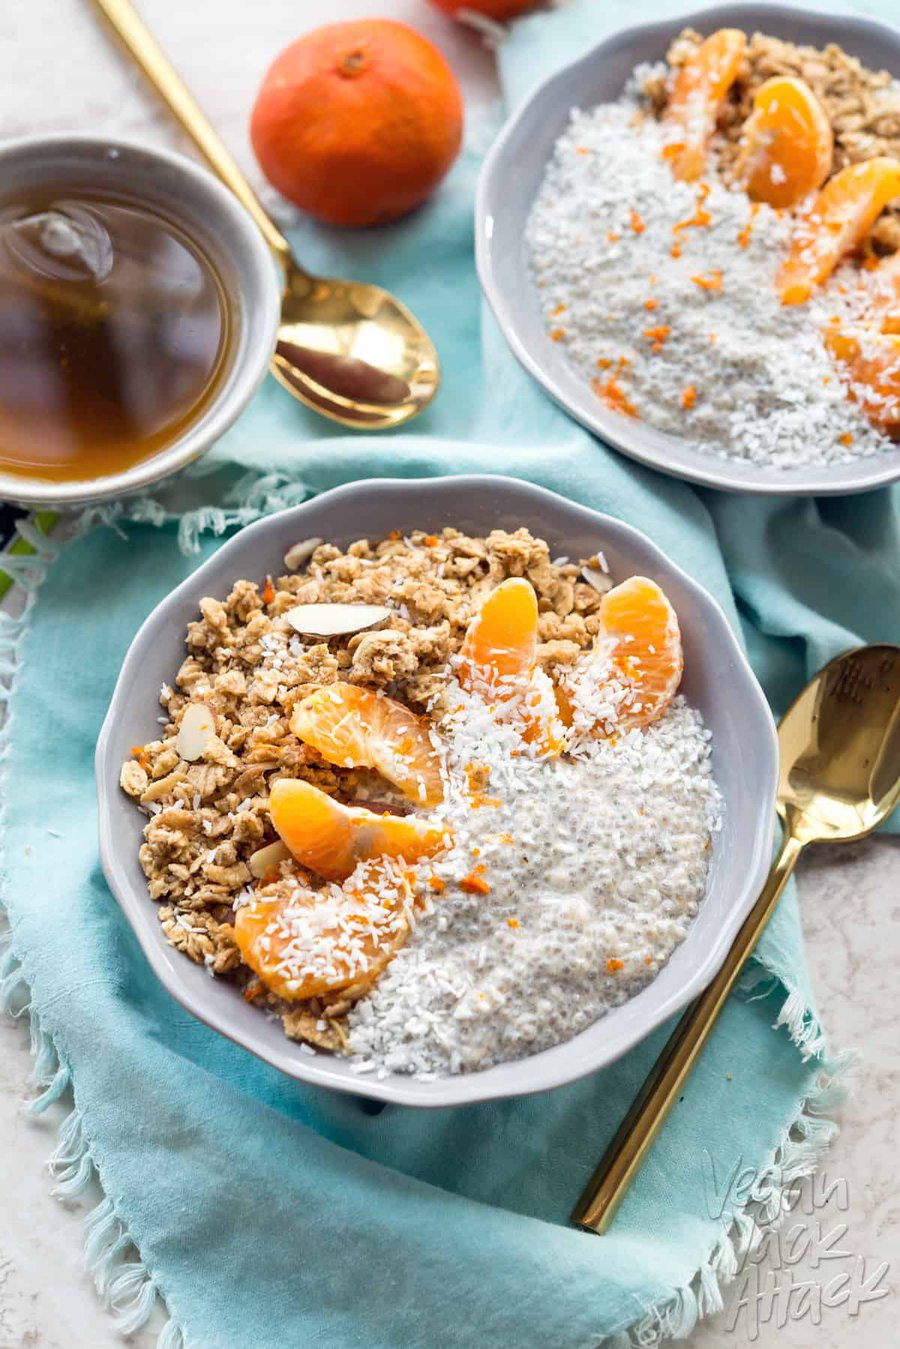 dreamy tangerine chia pudding with granola in a lilac-colored bowl with teal linen